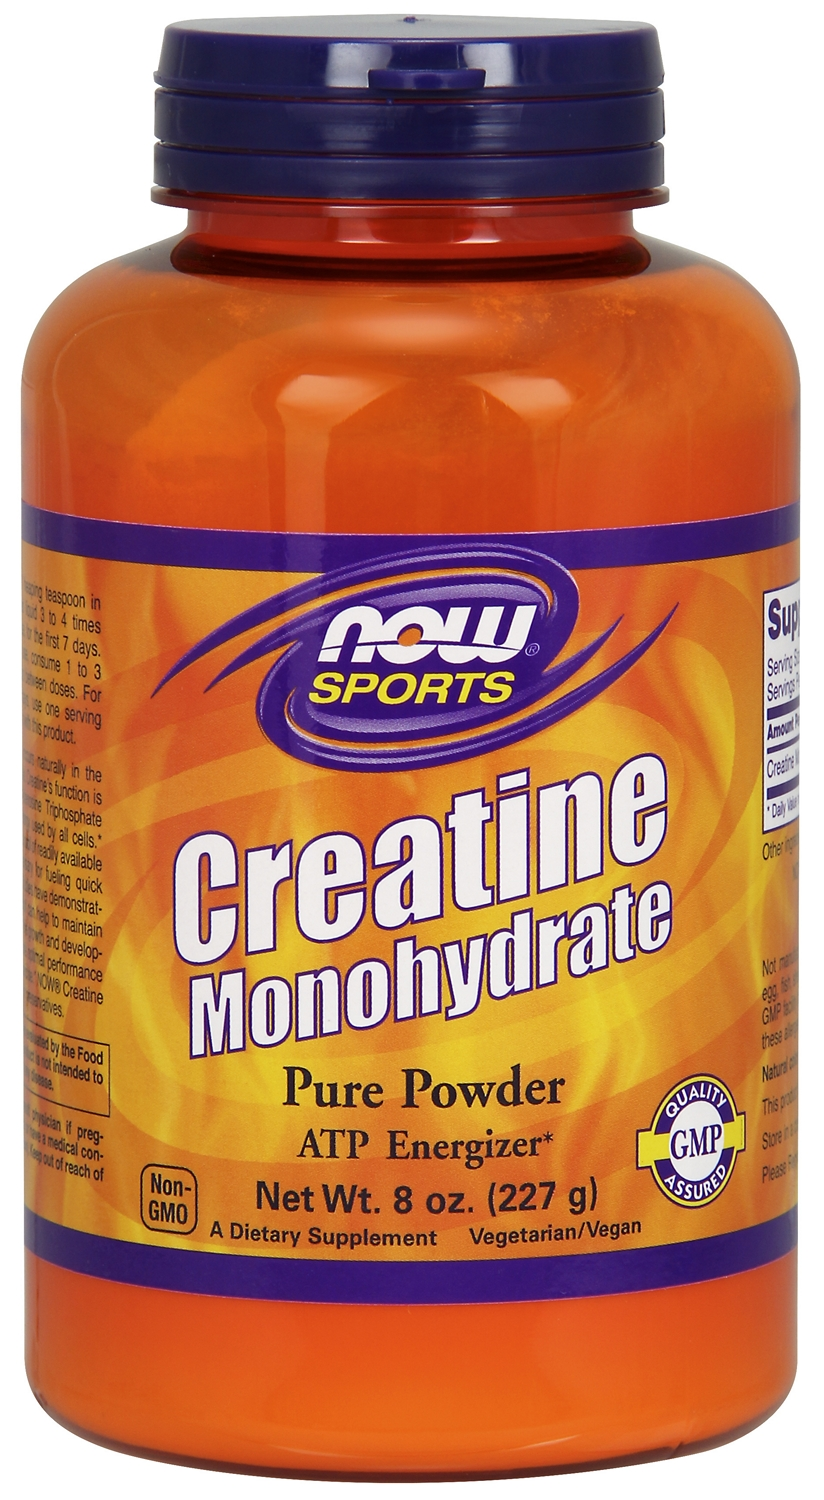 Creatine Monohydrate 8 oz (227 g) by NOW